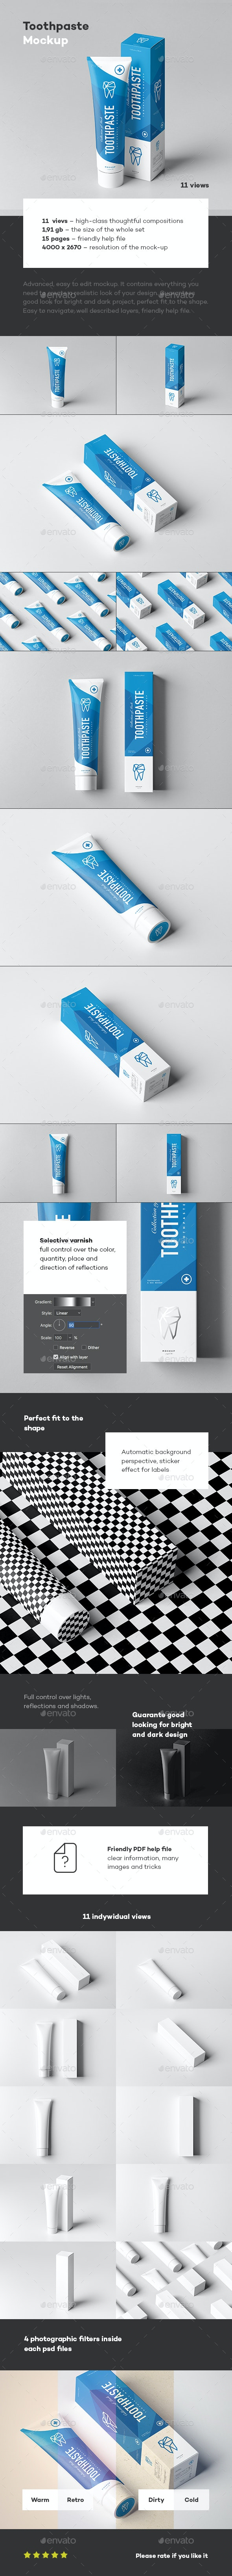 Toothpaste Mock-up - Miscellaneous Packaging